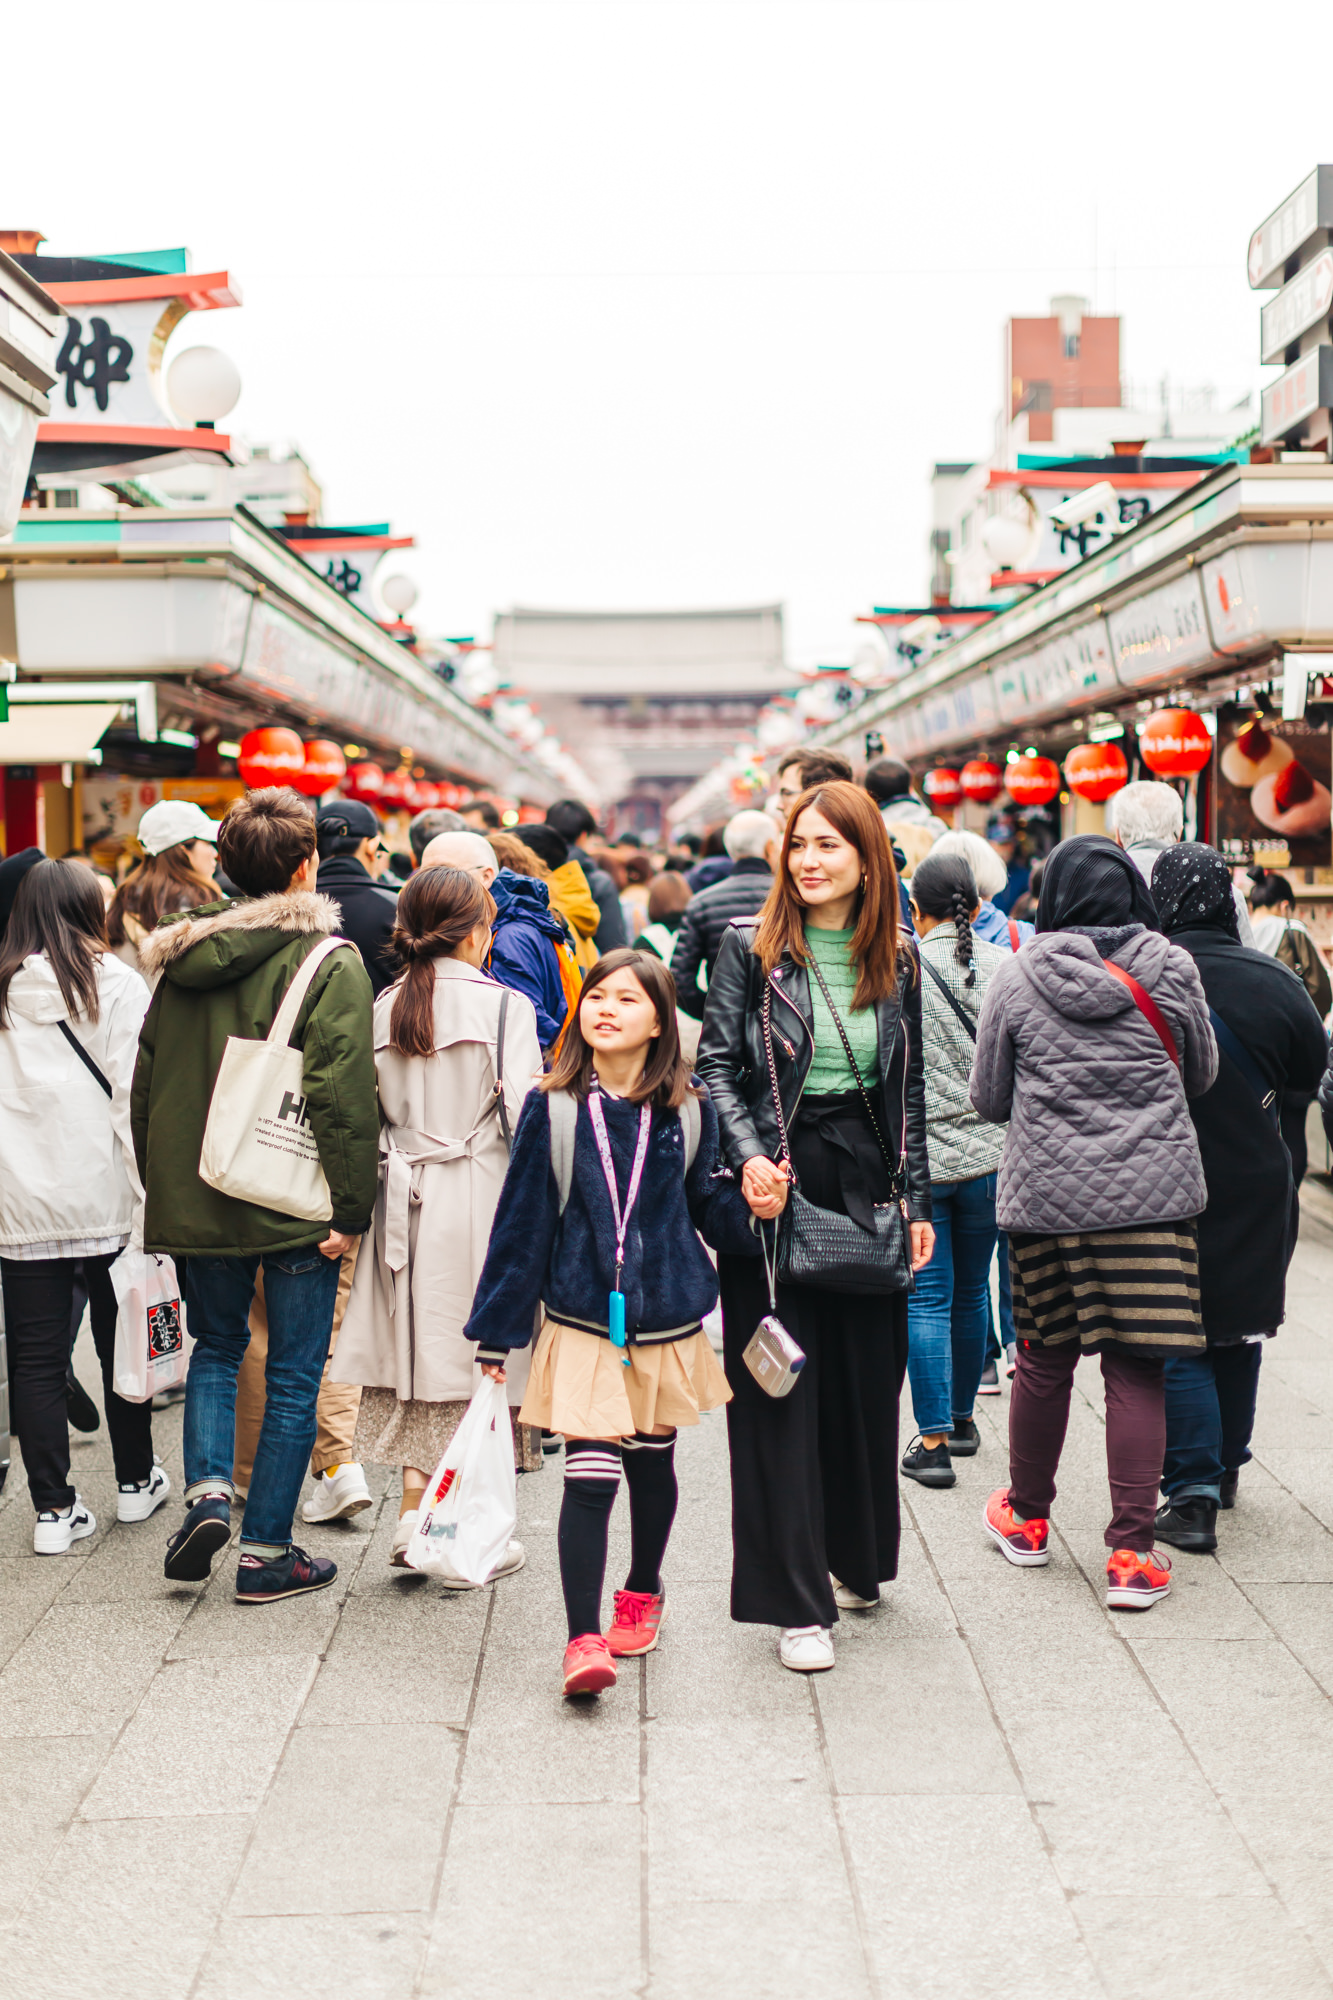 Our little sister and niece walking down Nakamise Shopping Street